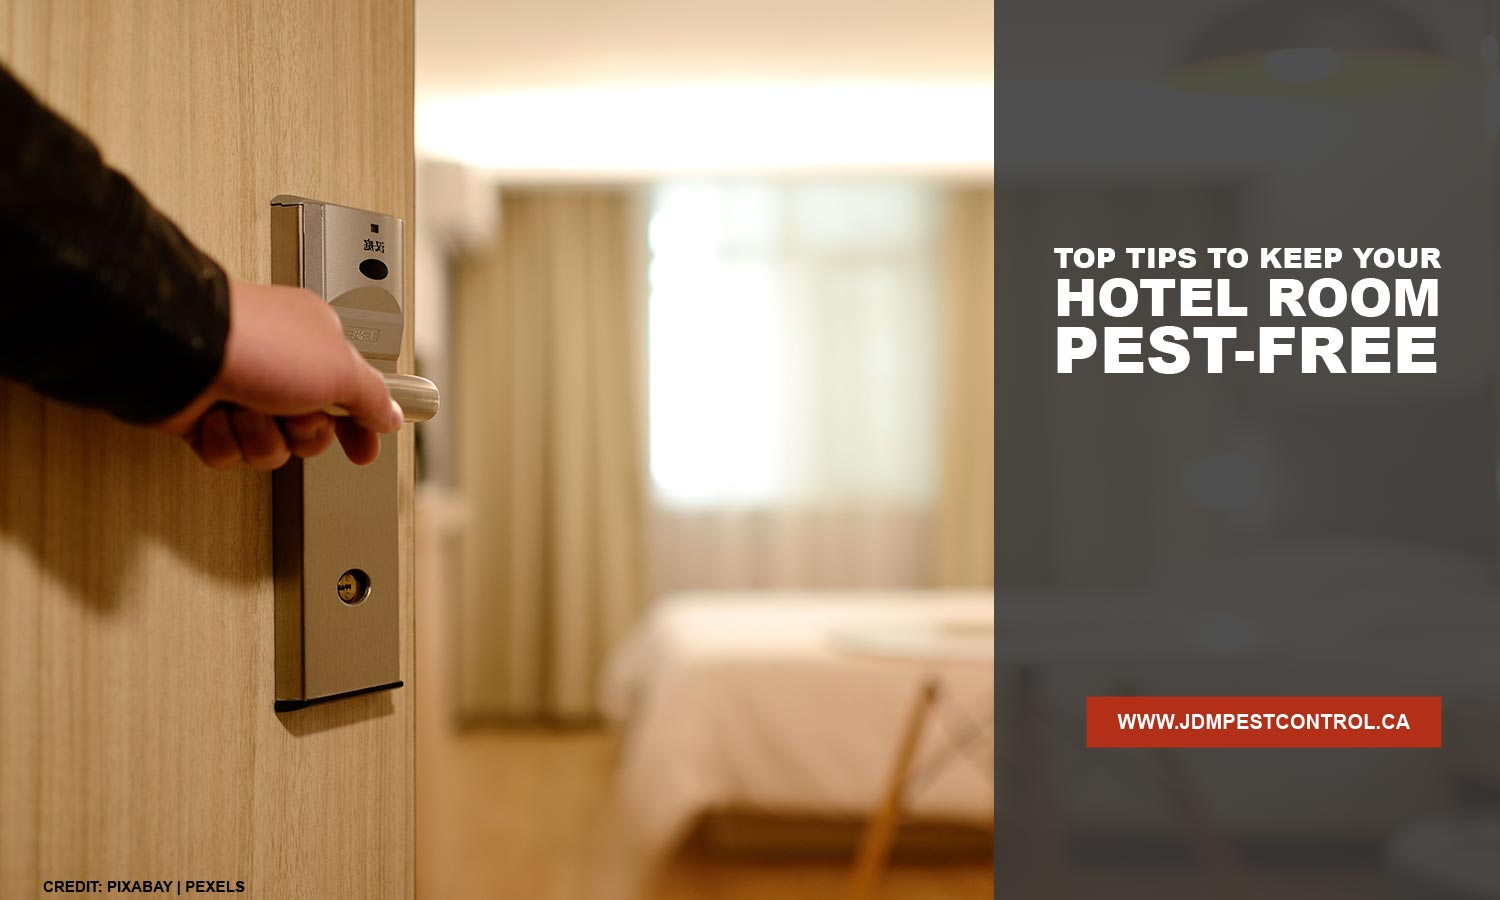 Top Tips to Keep Your Hotel Room Pest-Free